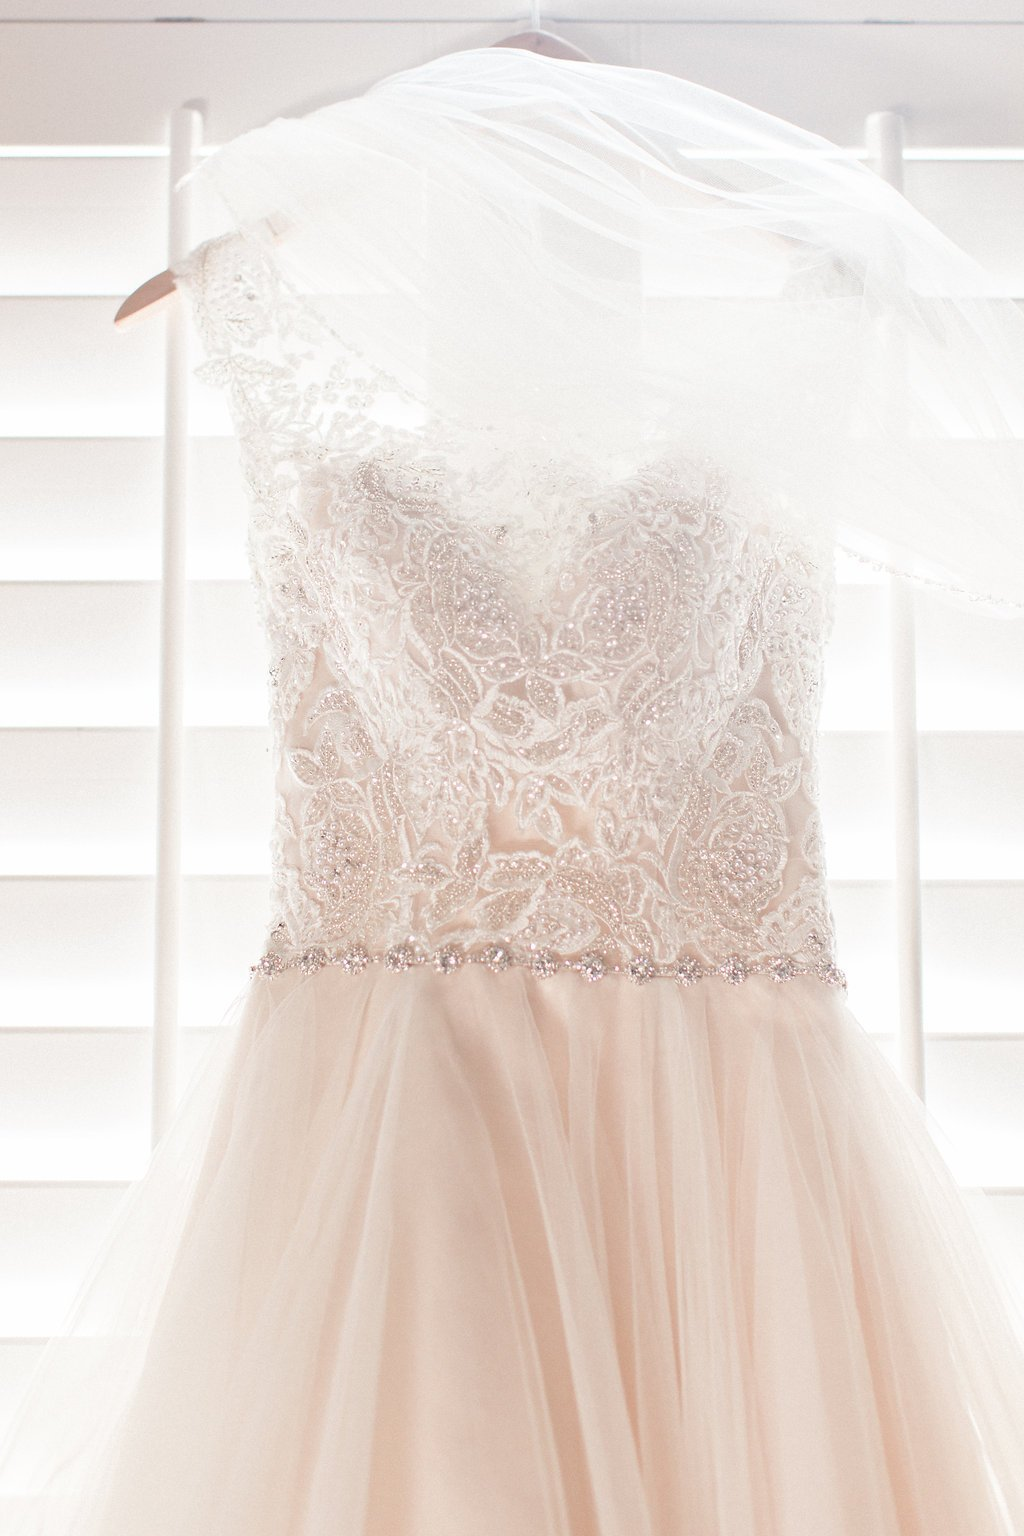 Maggie Sottero Designs Wedding Dress details with beading lace and tulle